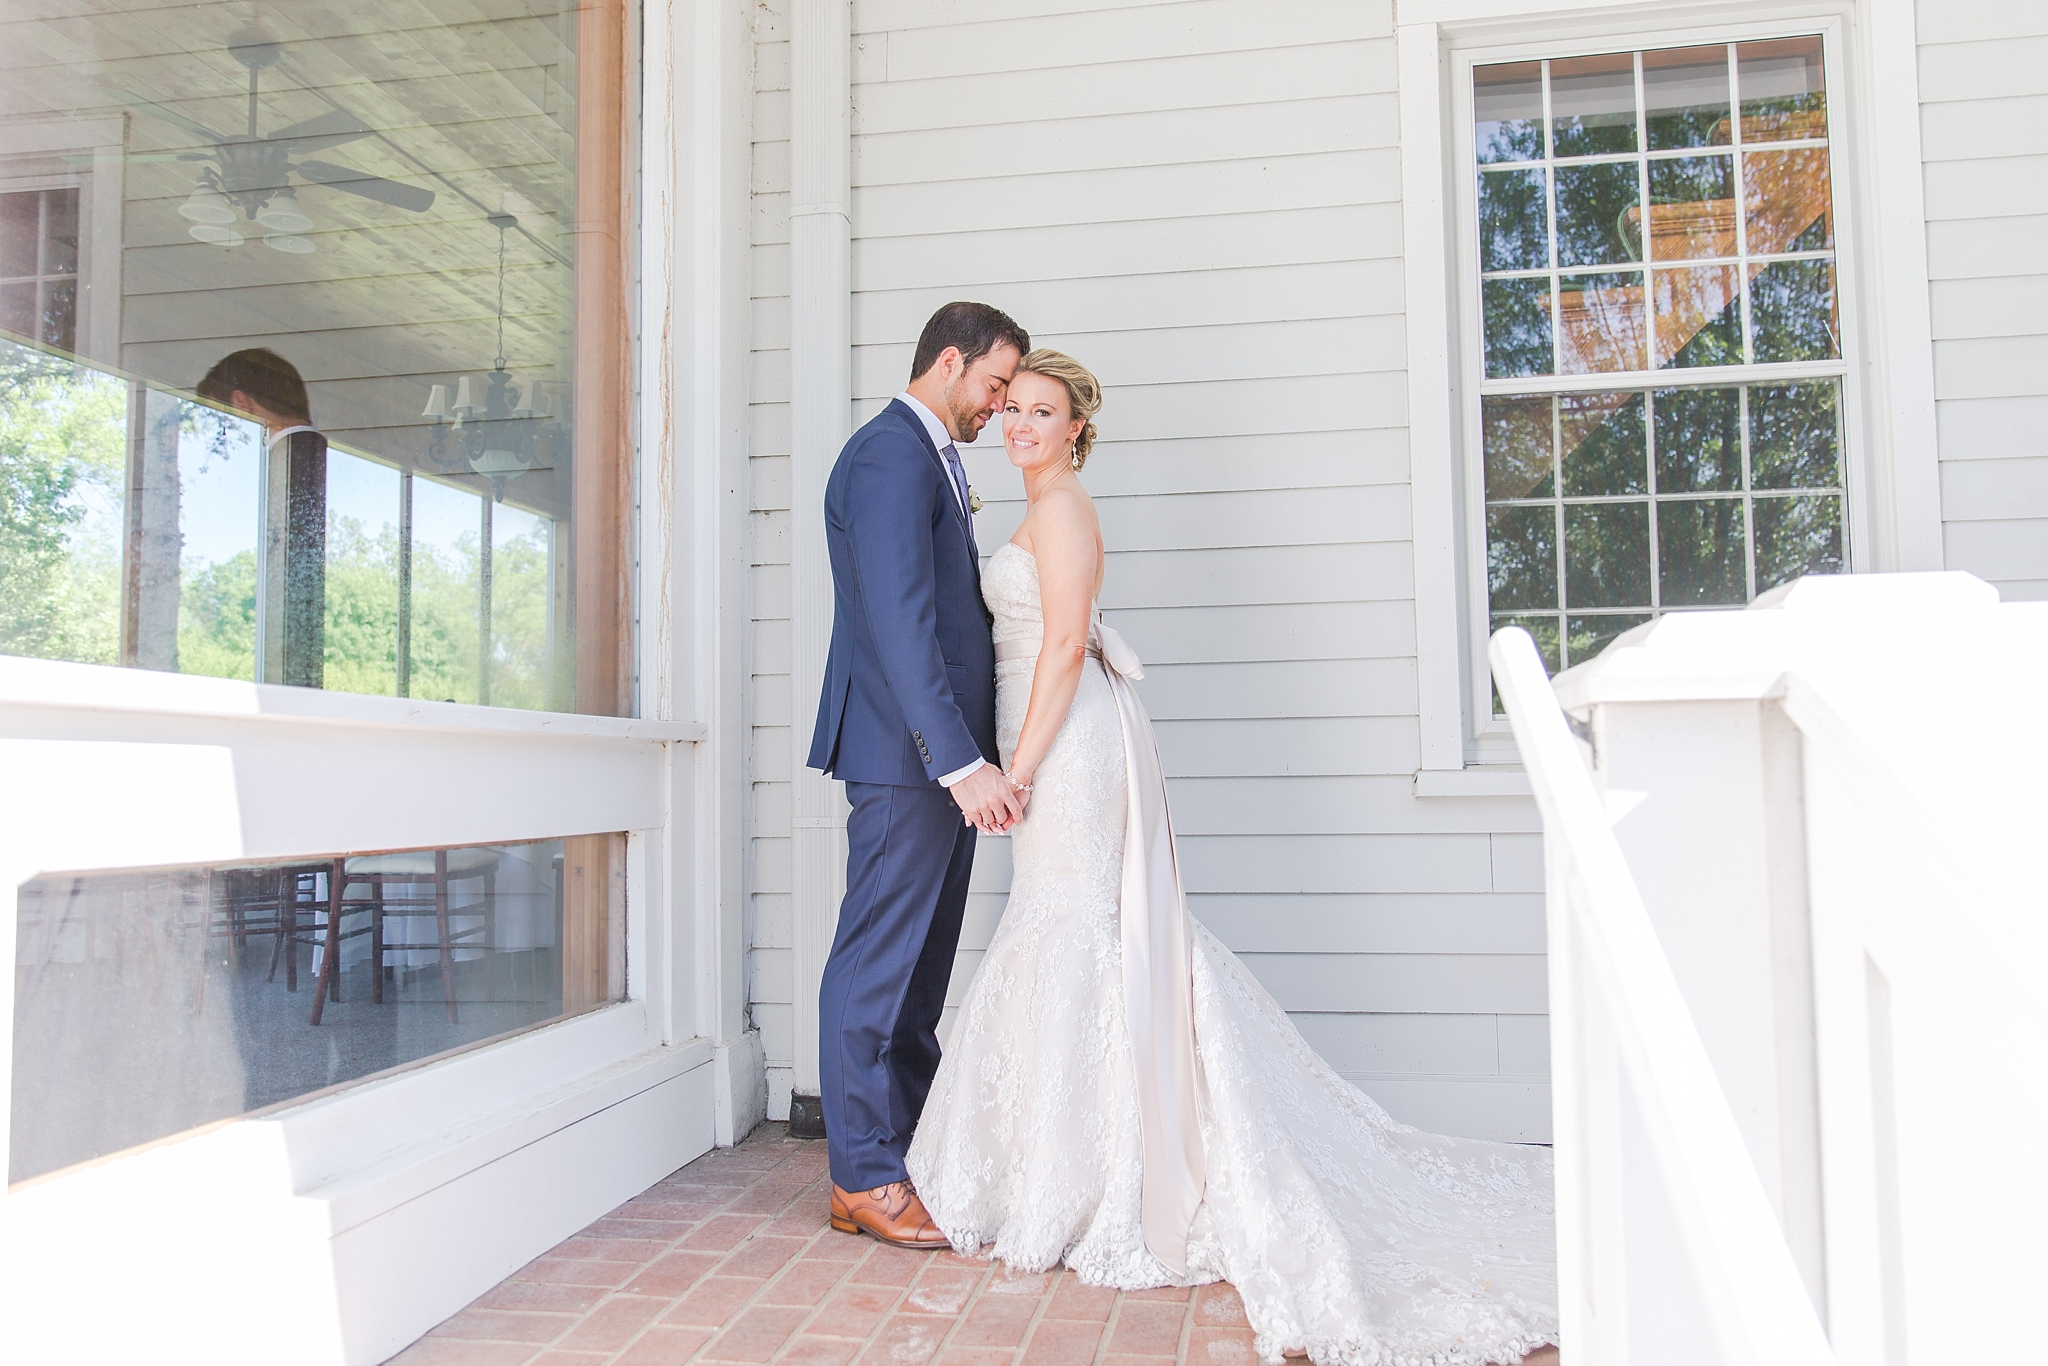 fun-candid-laid-back-wedding-photos-at-wellers-carriage-house-in-saline-michigan-and-at-the-eagle-crest-golf-resort-by-courtney-carolyn-photography_0079.jpg